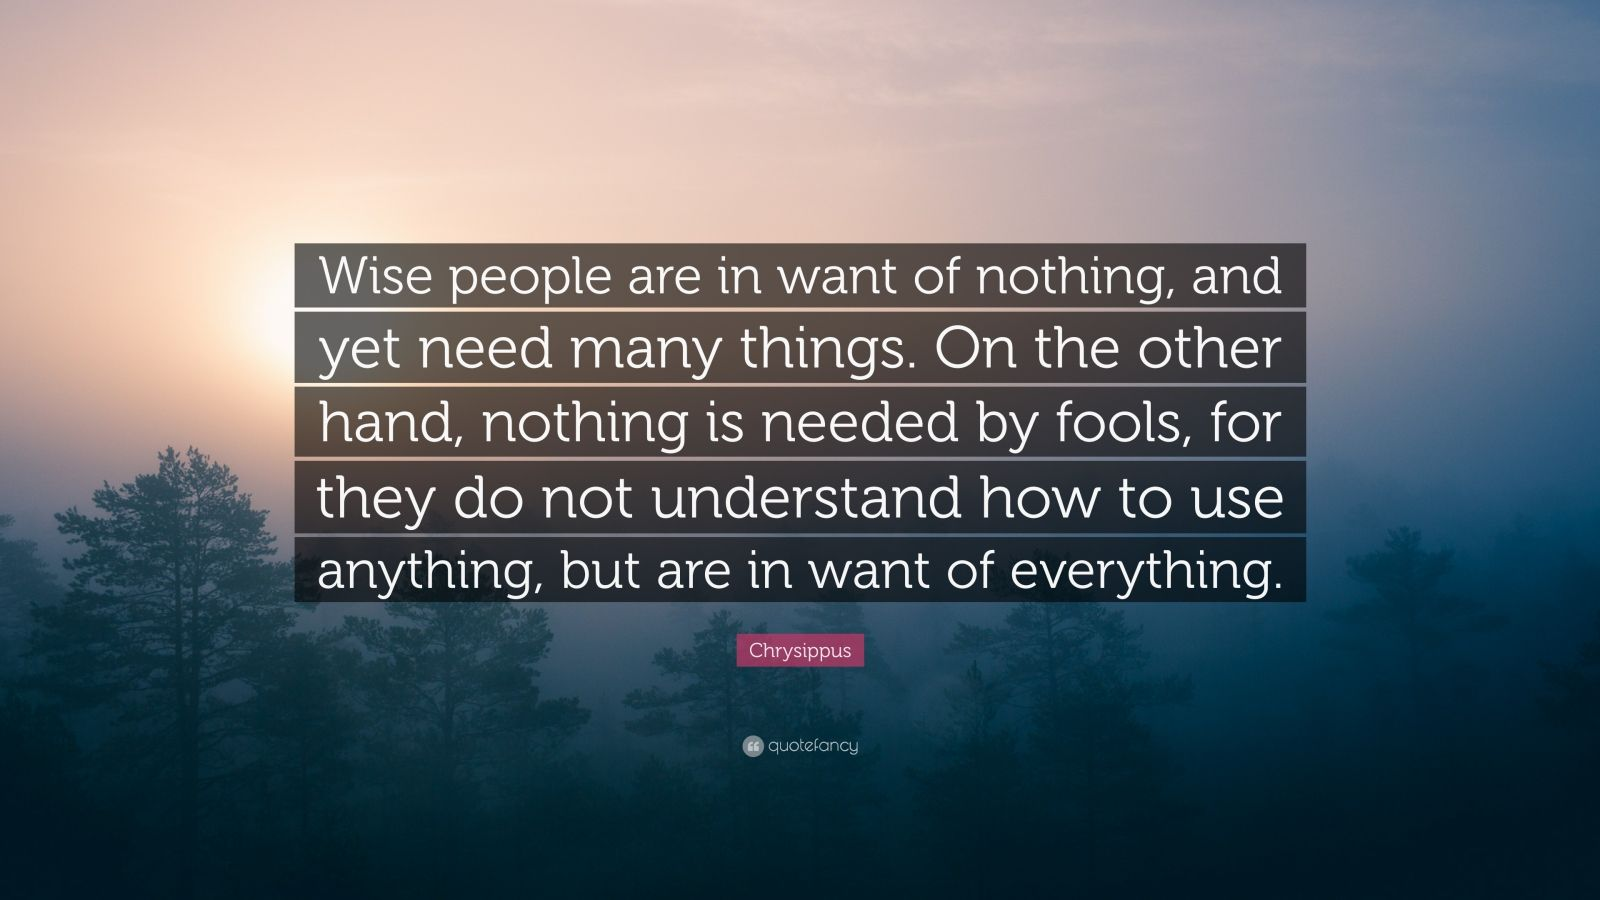 """Chrysippus Quote: """"Wise people are in want of nothing, and yet need many things. On the other hand, nothing is needed by fools, for they do not understand how to use anything, but are in want of everything."""""""